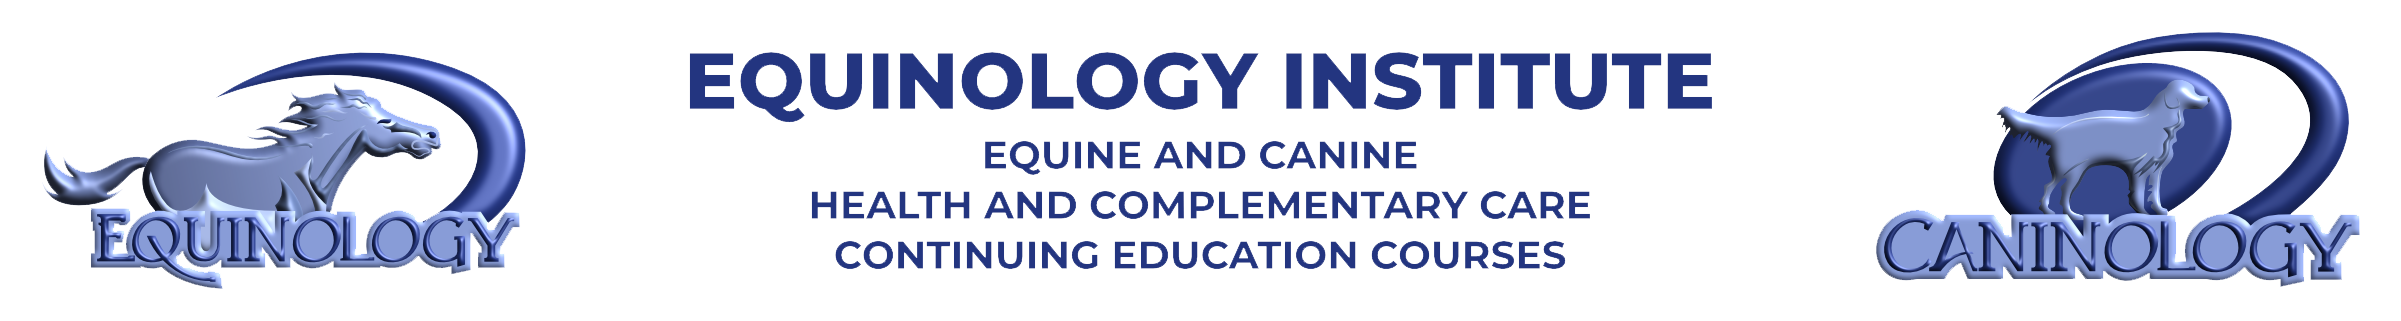 Equinology Institute Mobile Retina Logo